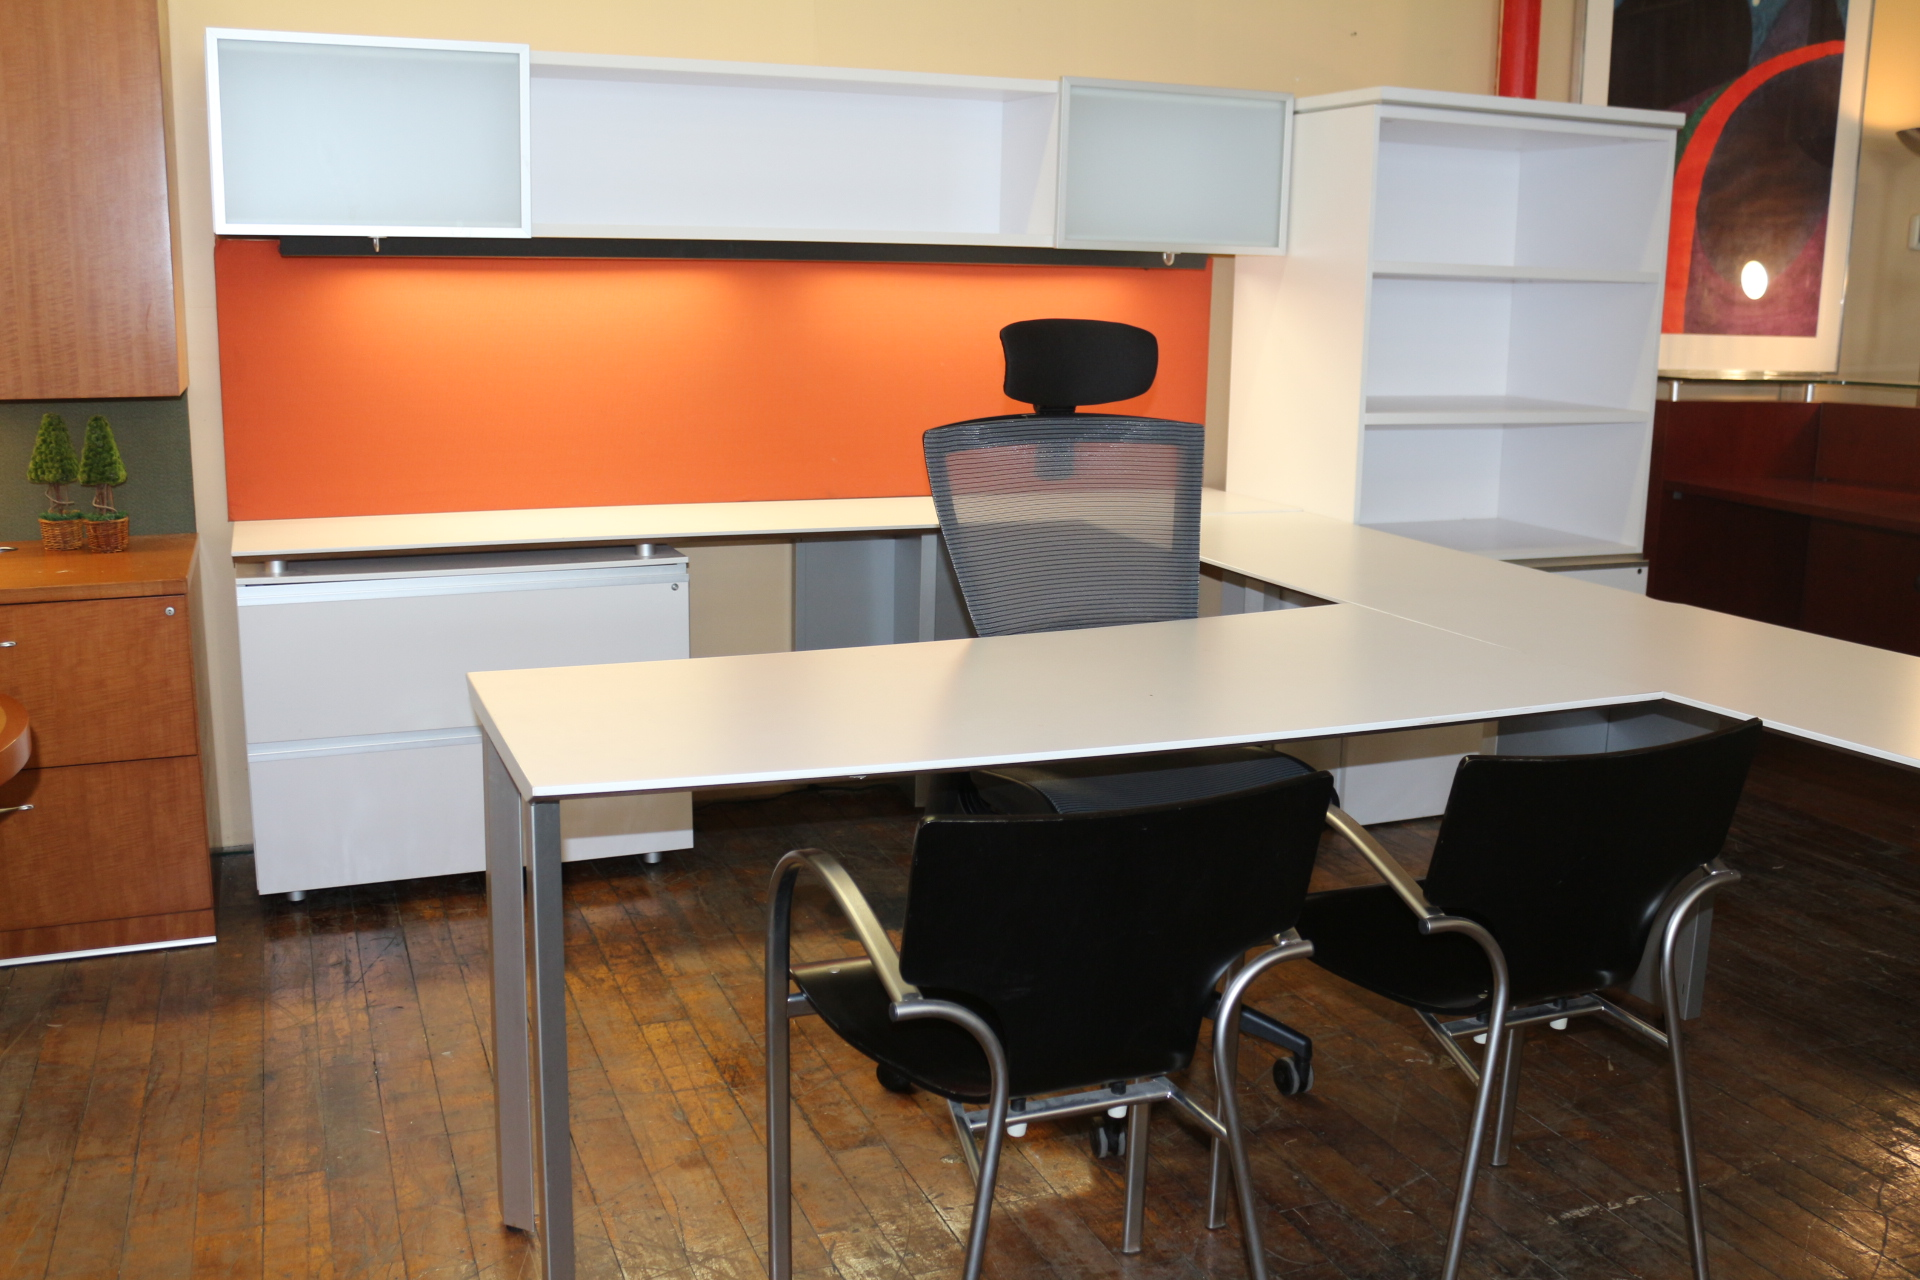 peartreeofficefurniture_peartreeofficefurniture_img_1080.jpg